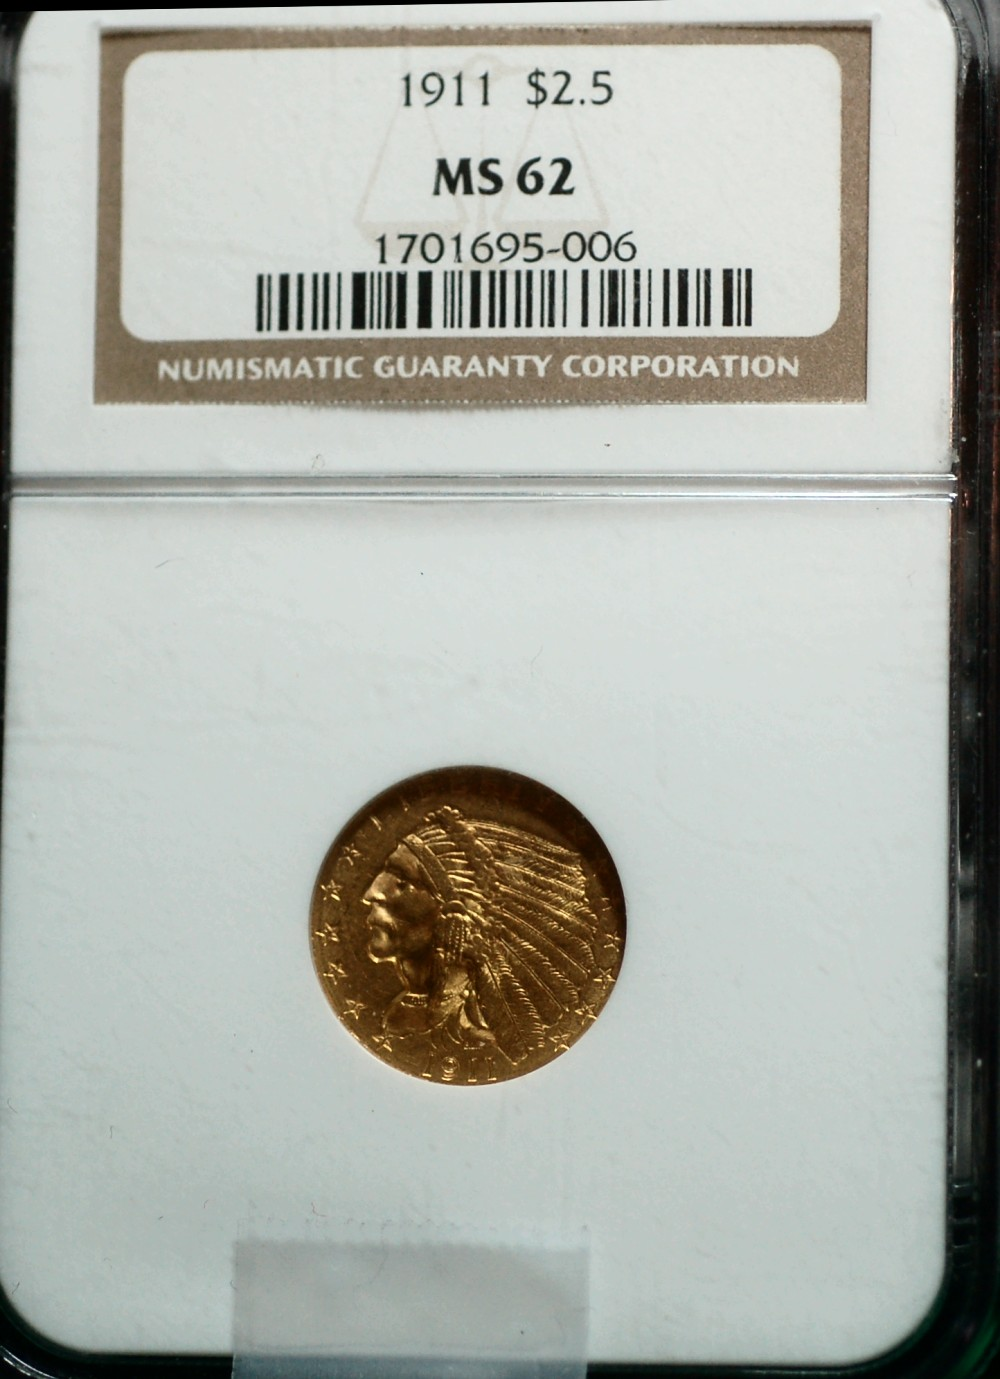 1911 2 1/2$ Gold Indian NGC for sale.